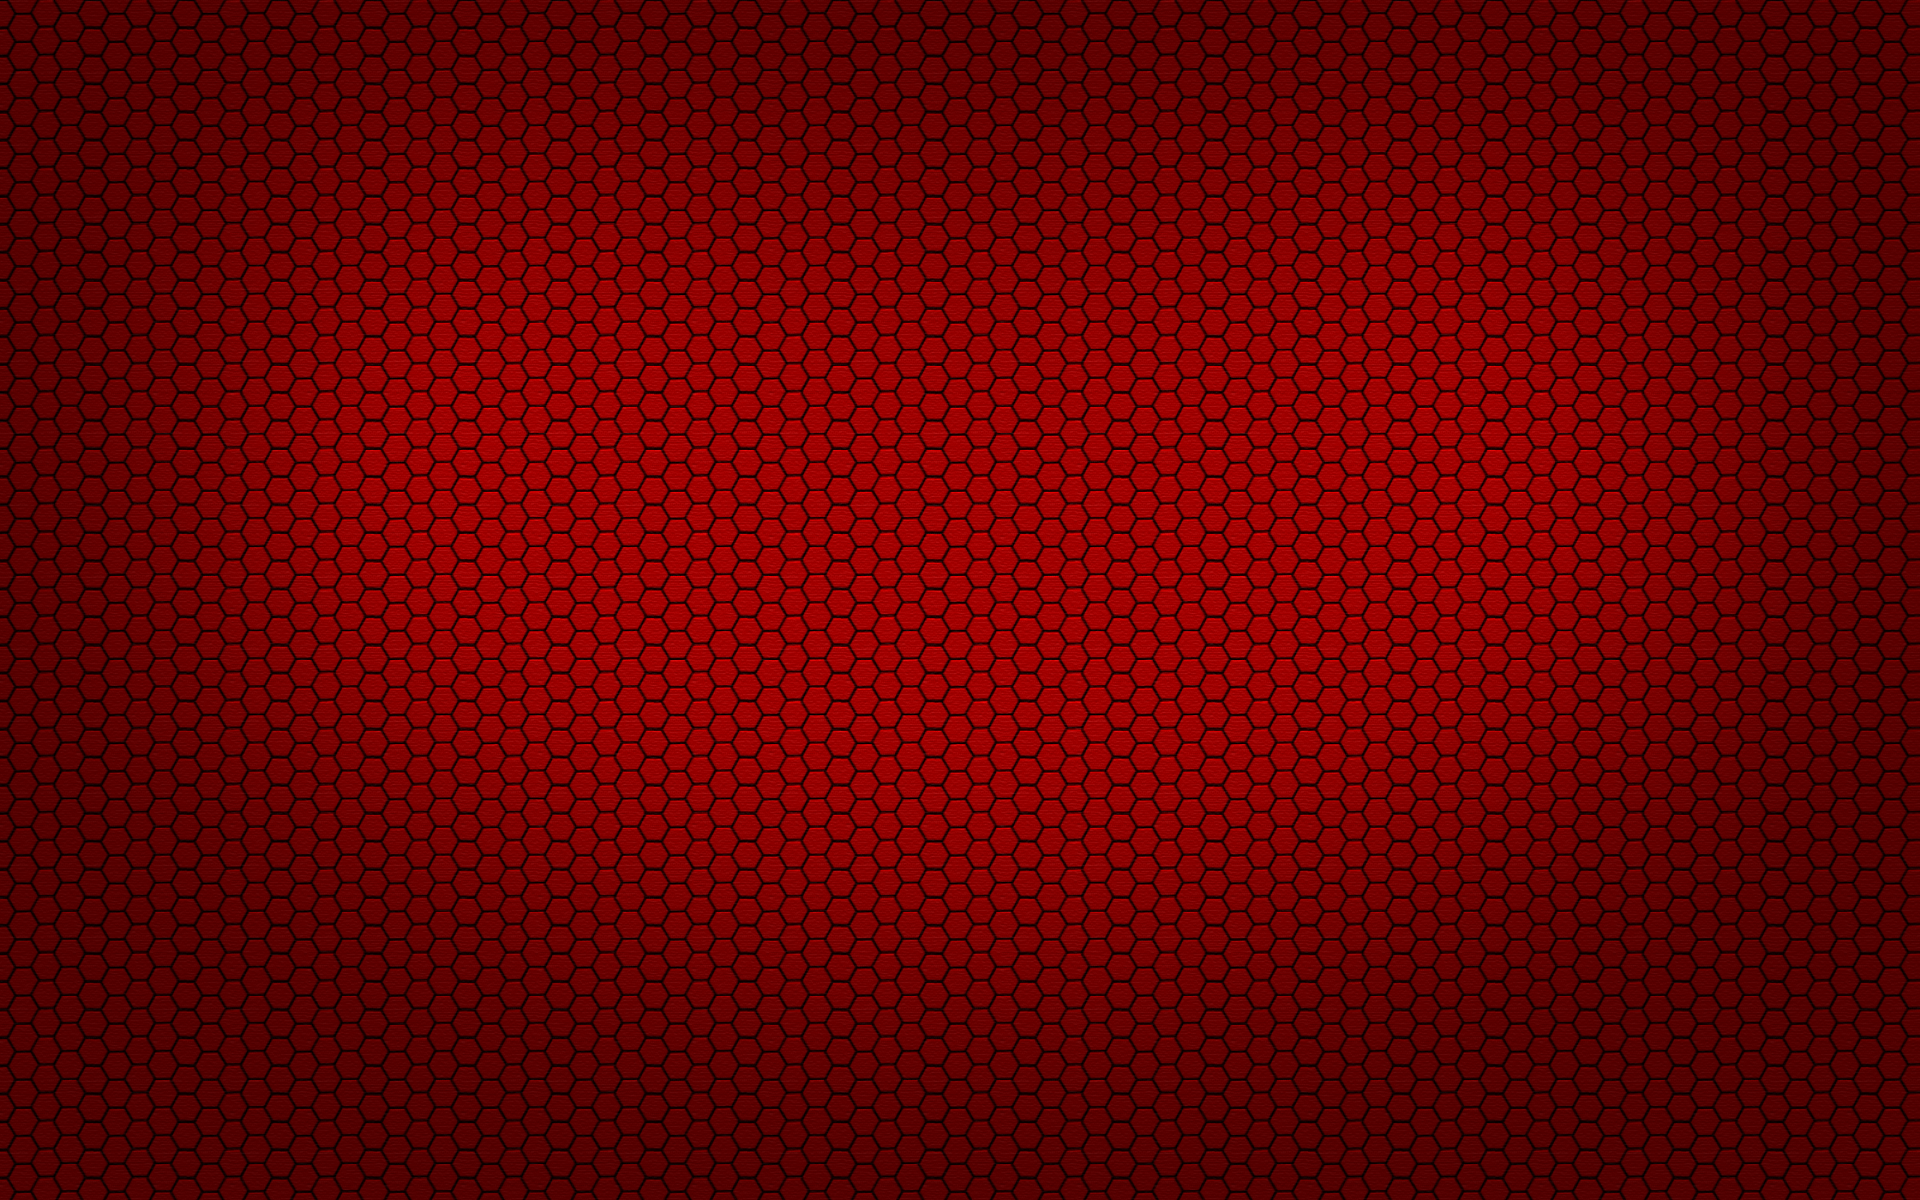 Pattern red patterns backgrounds wallpaper 1920x1200 19178 1920x1200